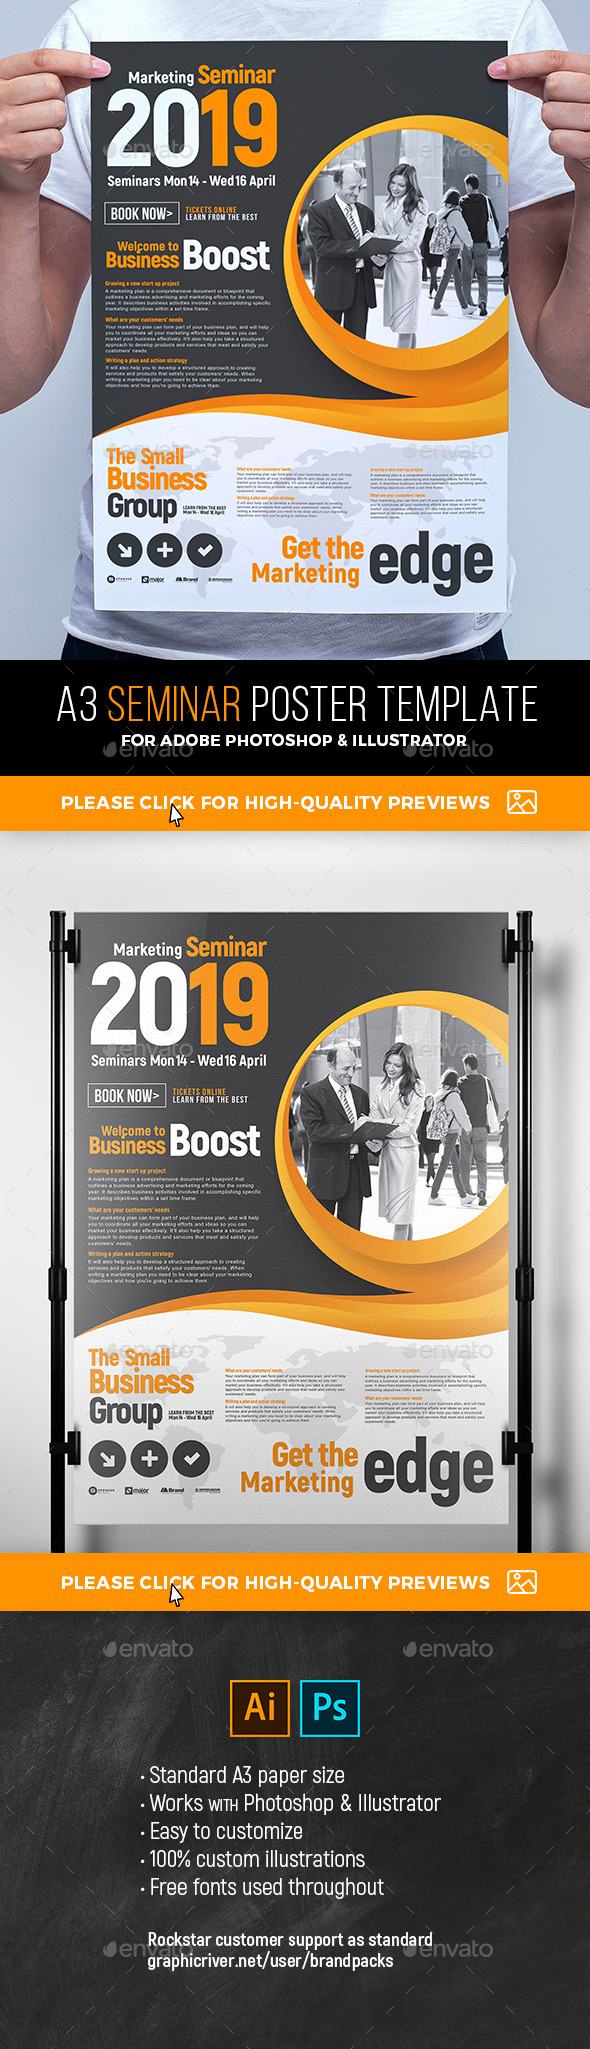 Seminar Poster Template - Corporate Flyers